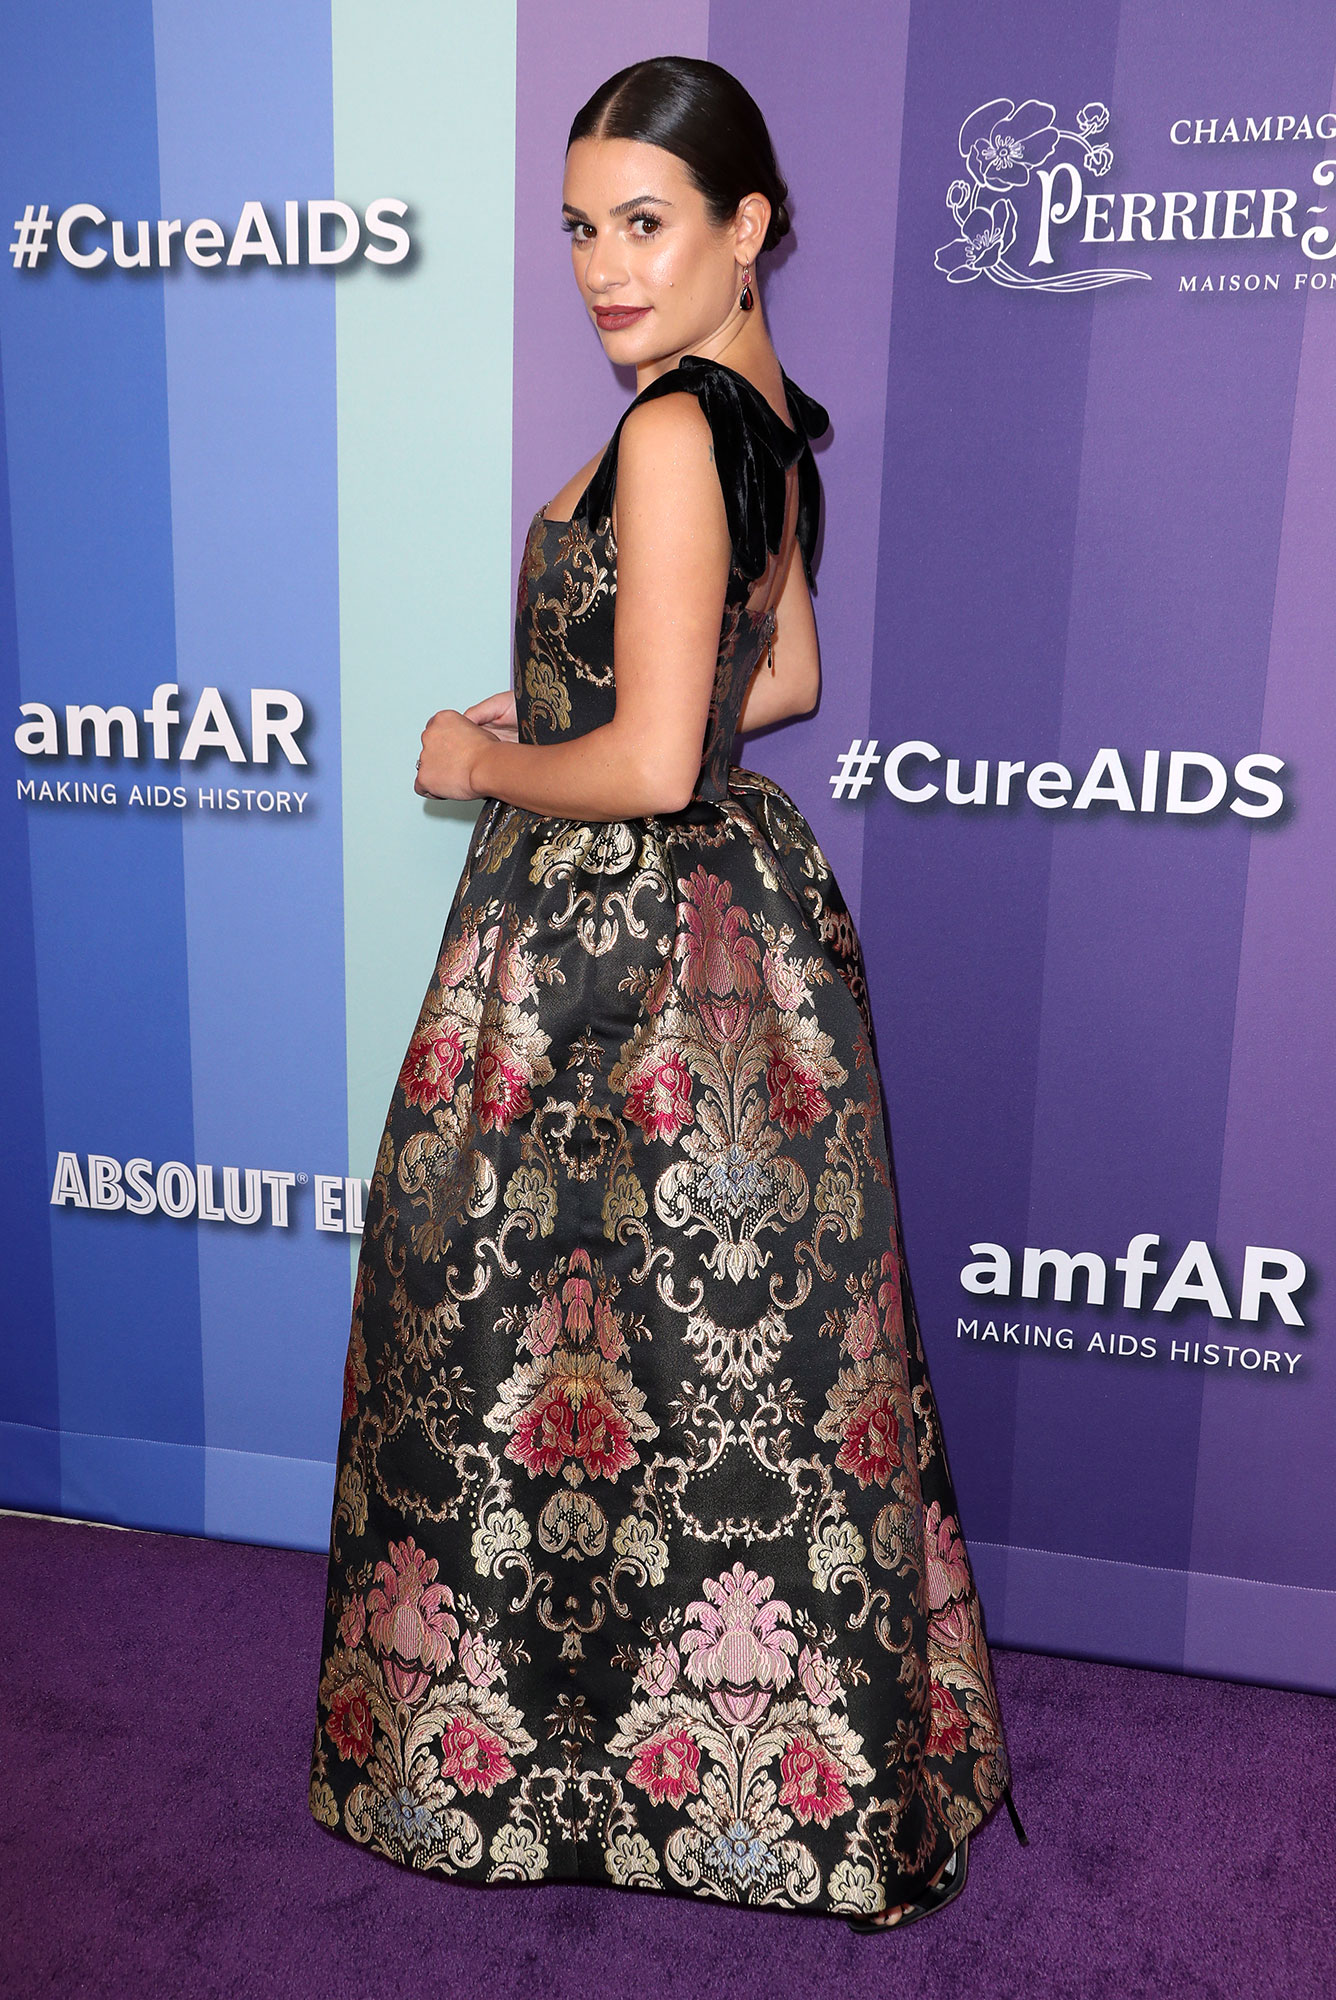 Lea Michele Breaks Her Silence After Glee Cast Accusations Wearing Reem Acra